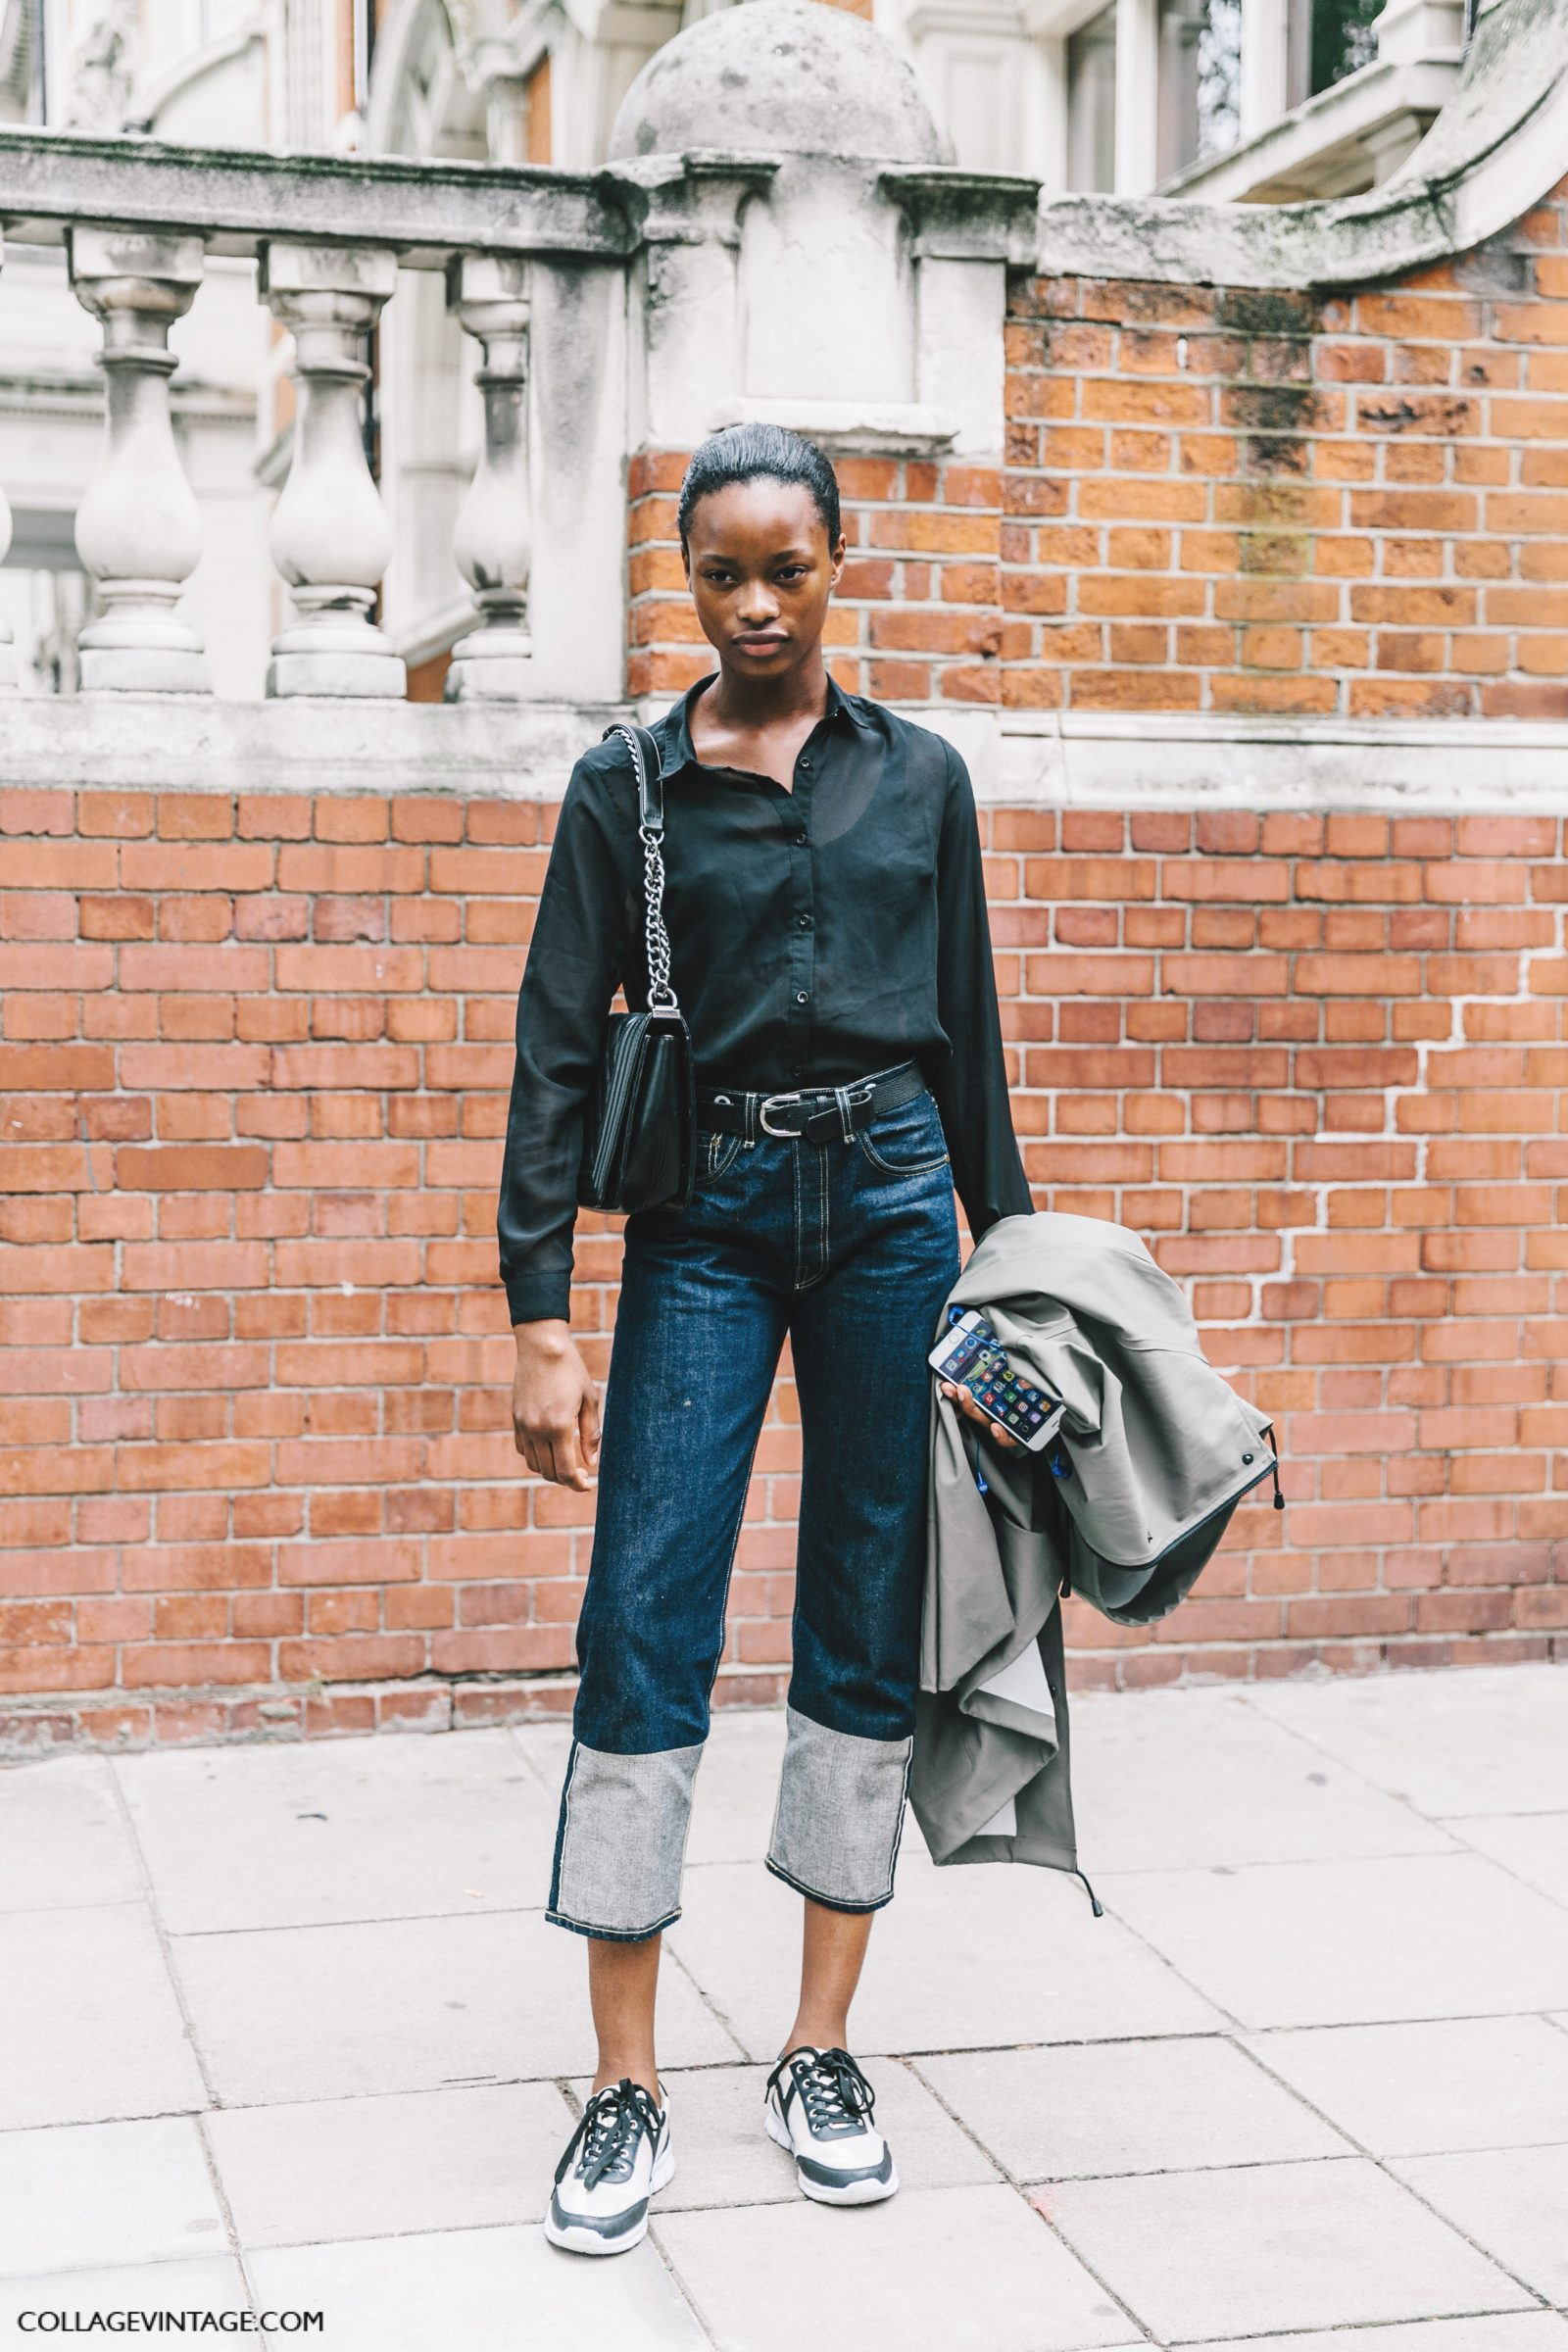 lfw-london_fashion_week_ss17-street_style-outfits-collage_vintage-vintage-topshop_unique-anya-mulberry-preen-34